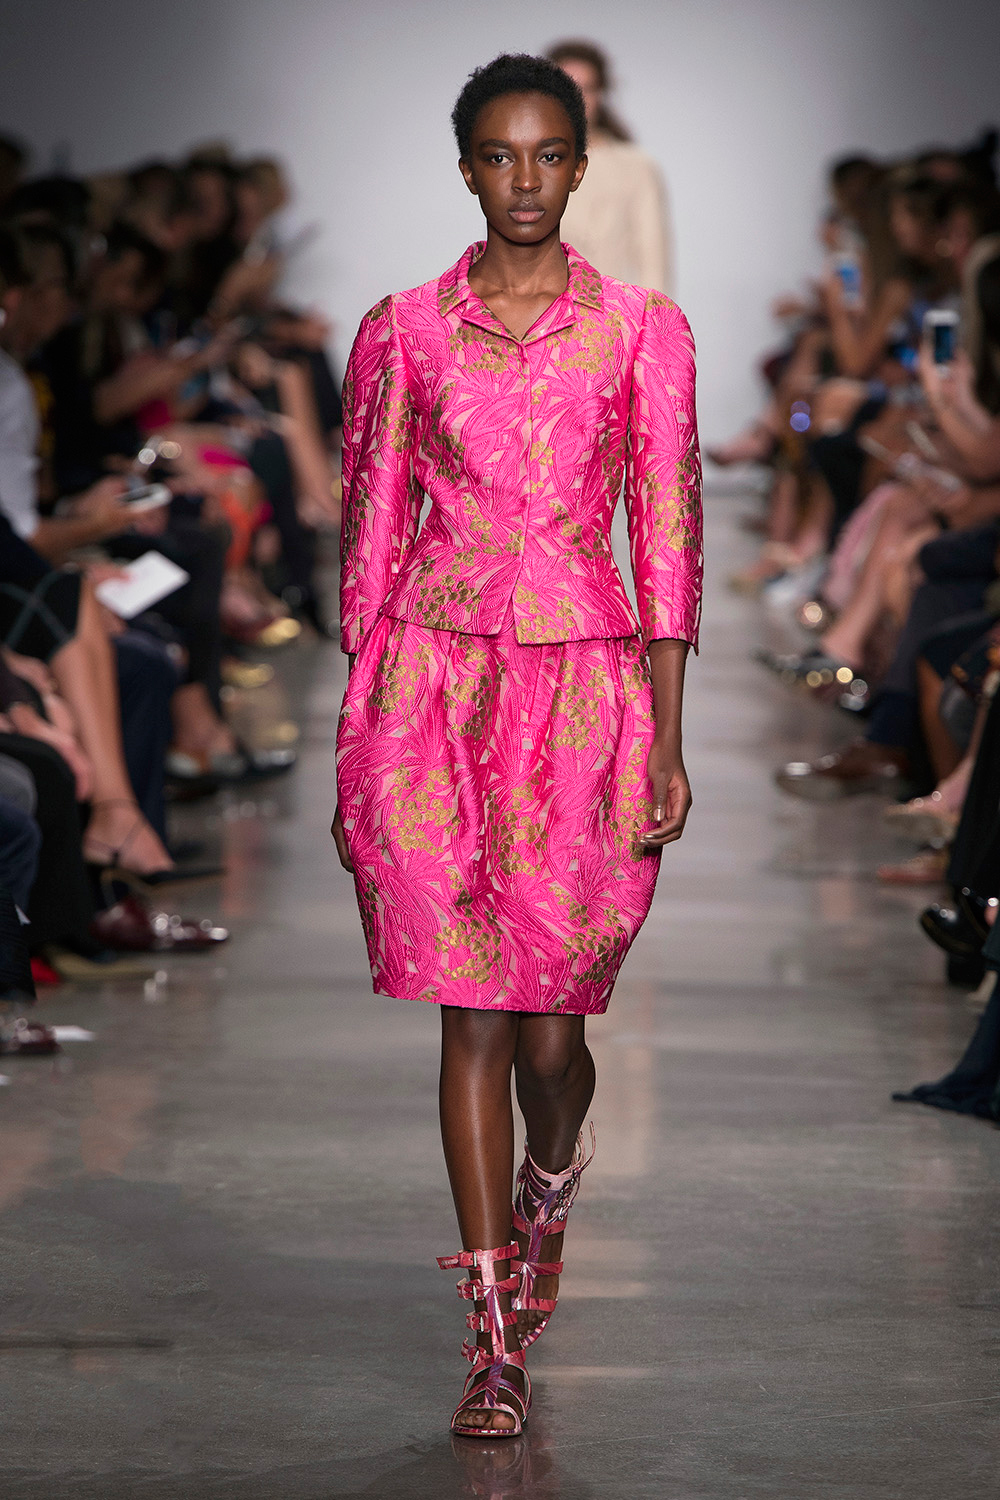 Look 5: Pink Jacket and Skirt